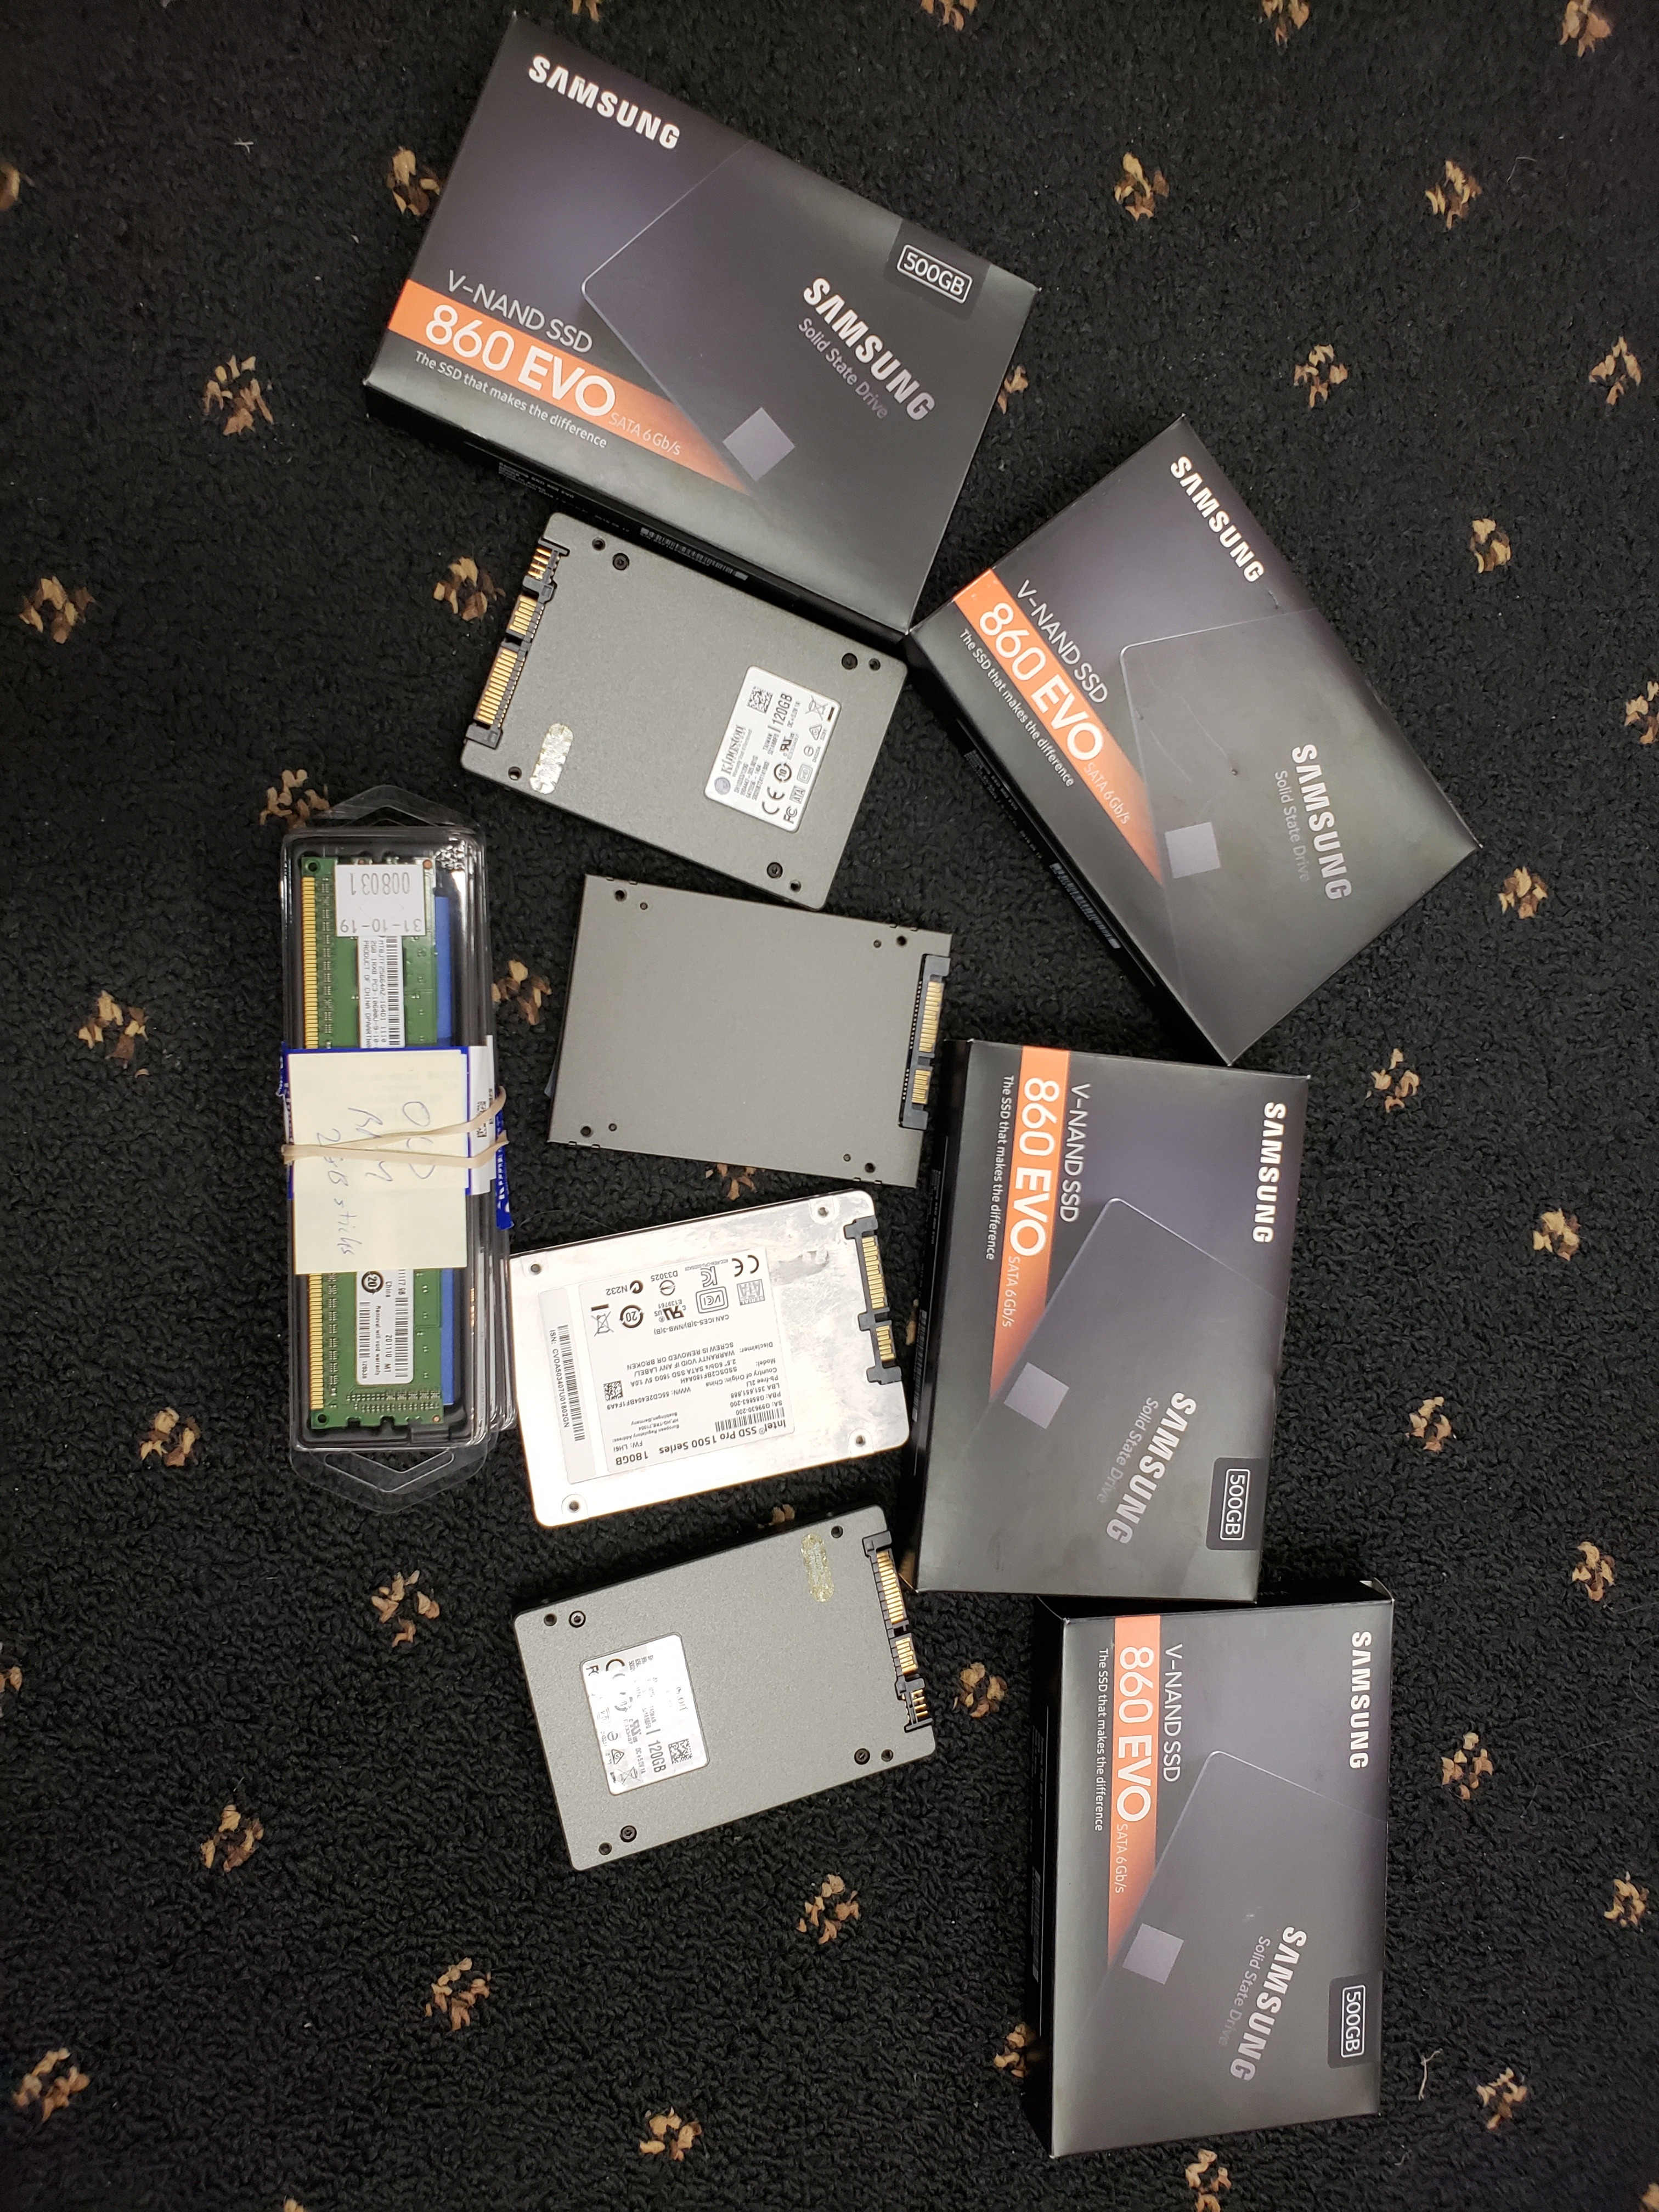 SSD (for upgrades)